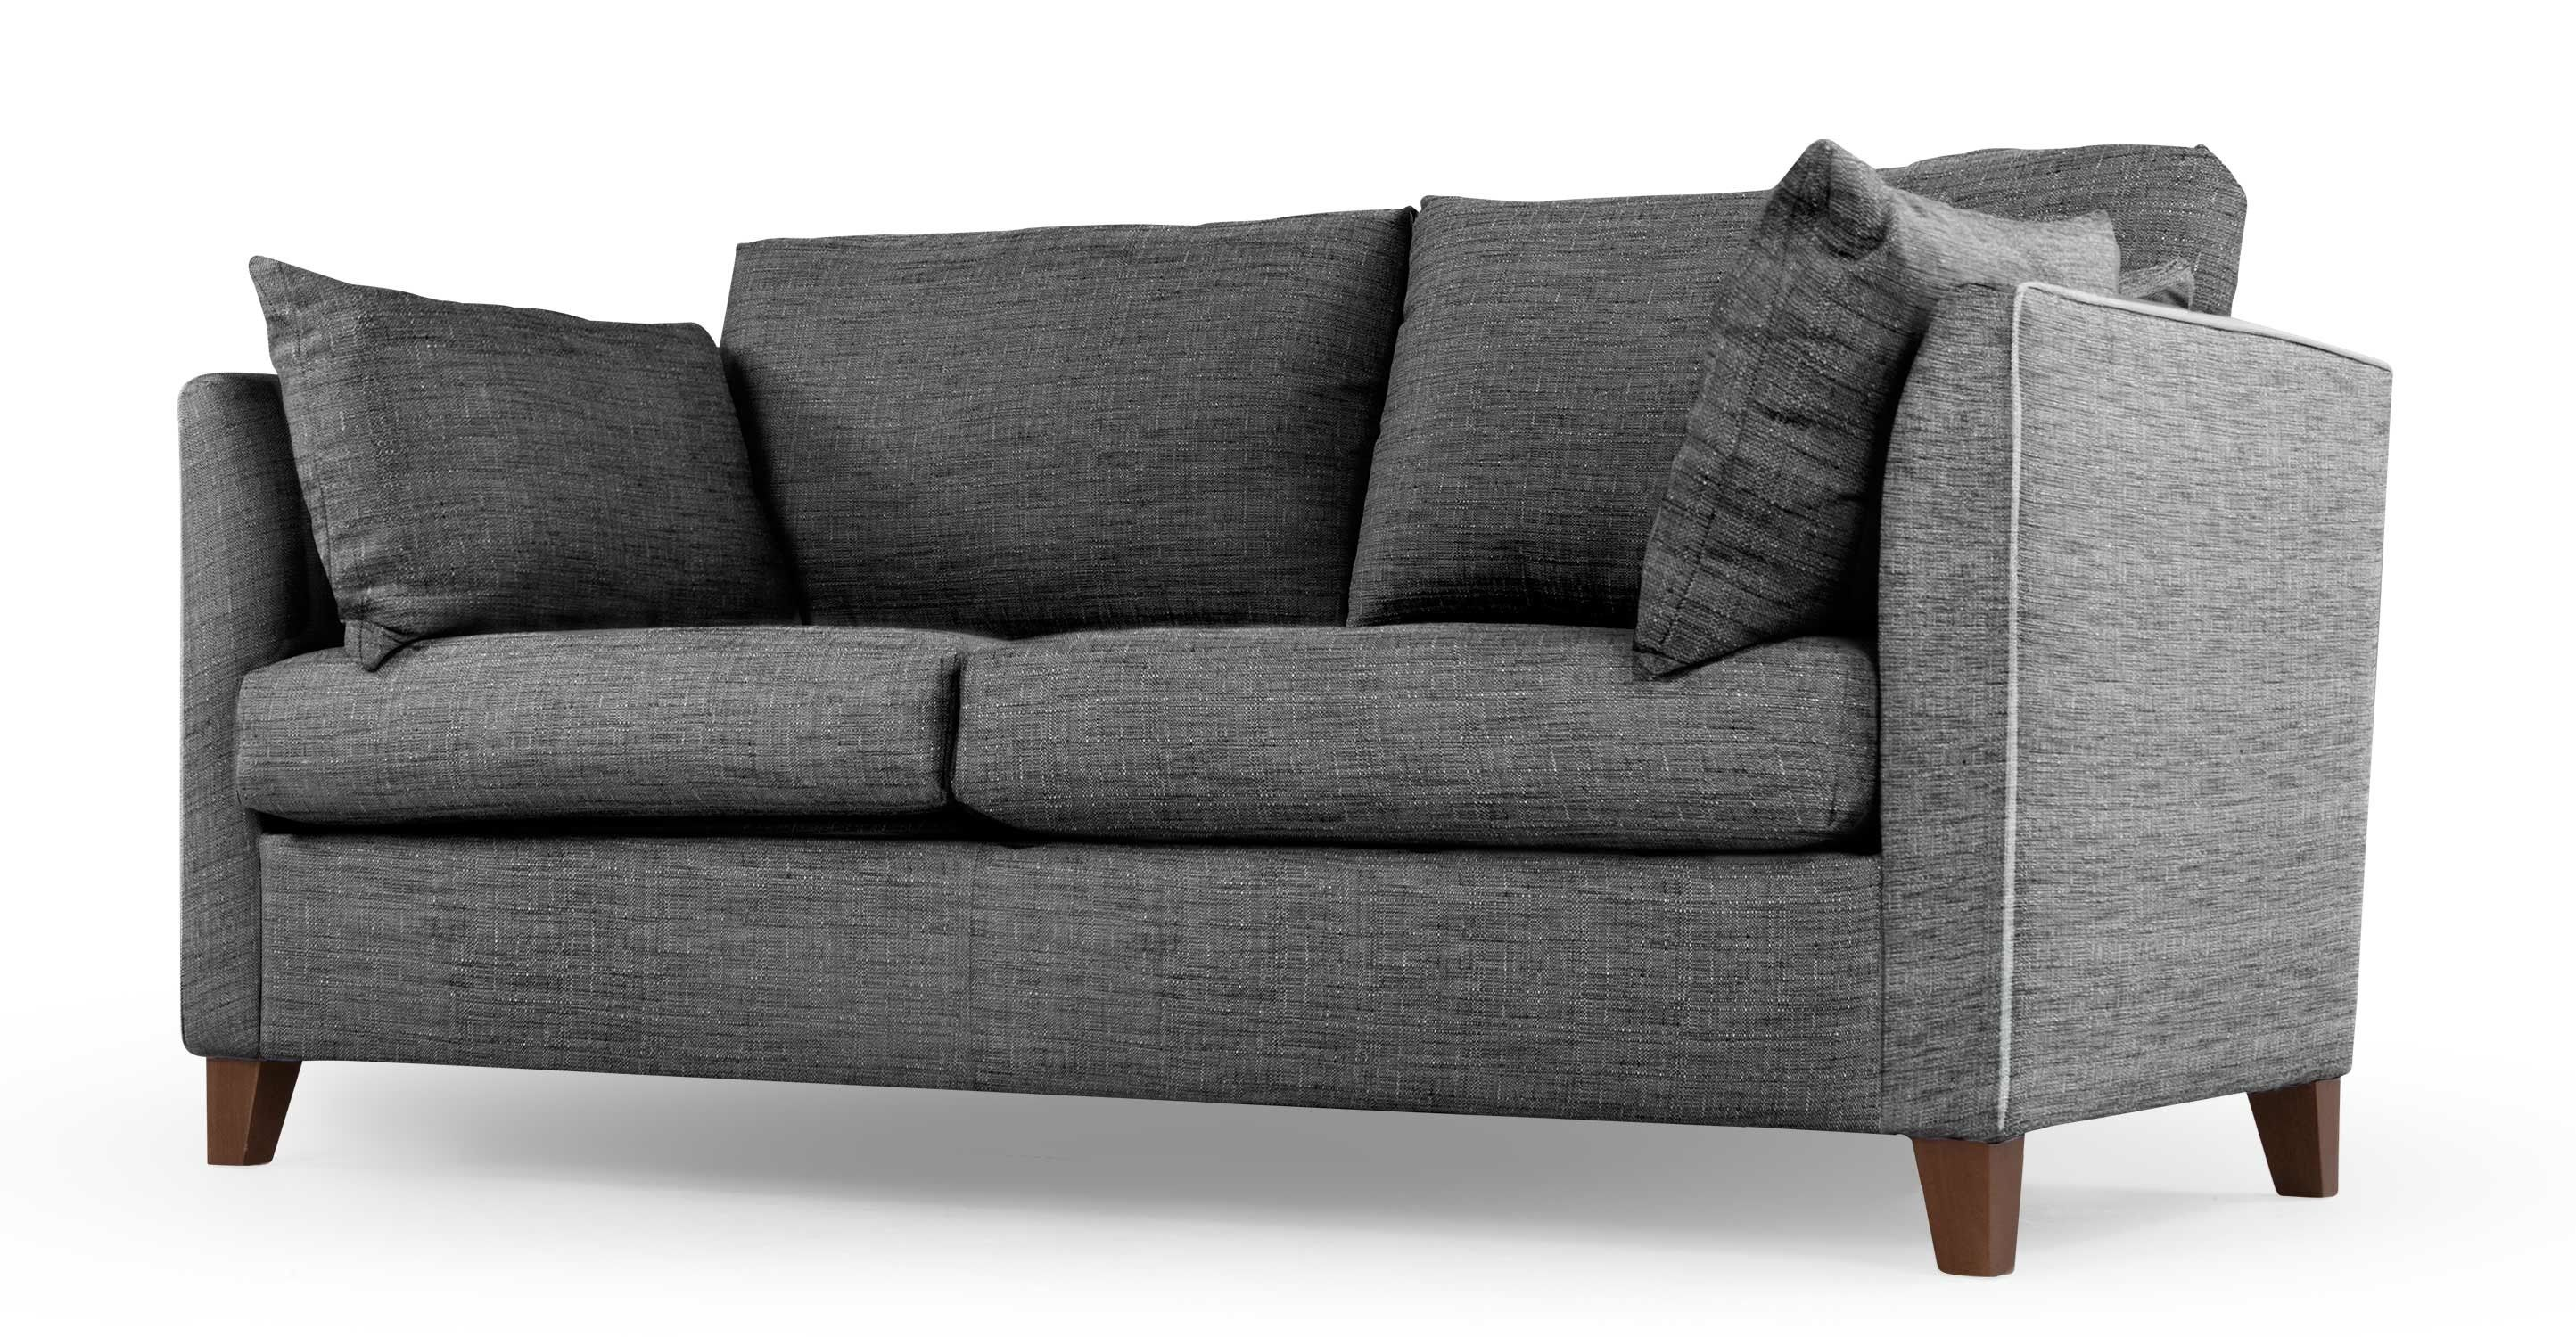 Bari Sofabed With Memory Foam Mattress Malva Graphite Made Com Sofa Bed Habitat Sofa Bed Sofa